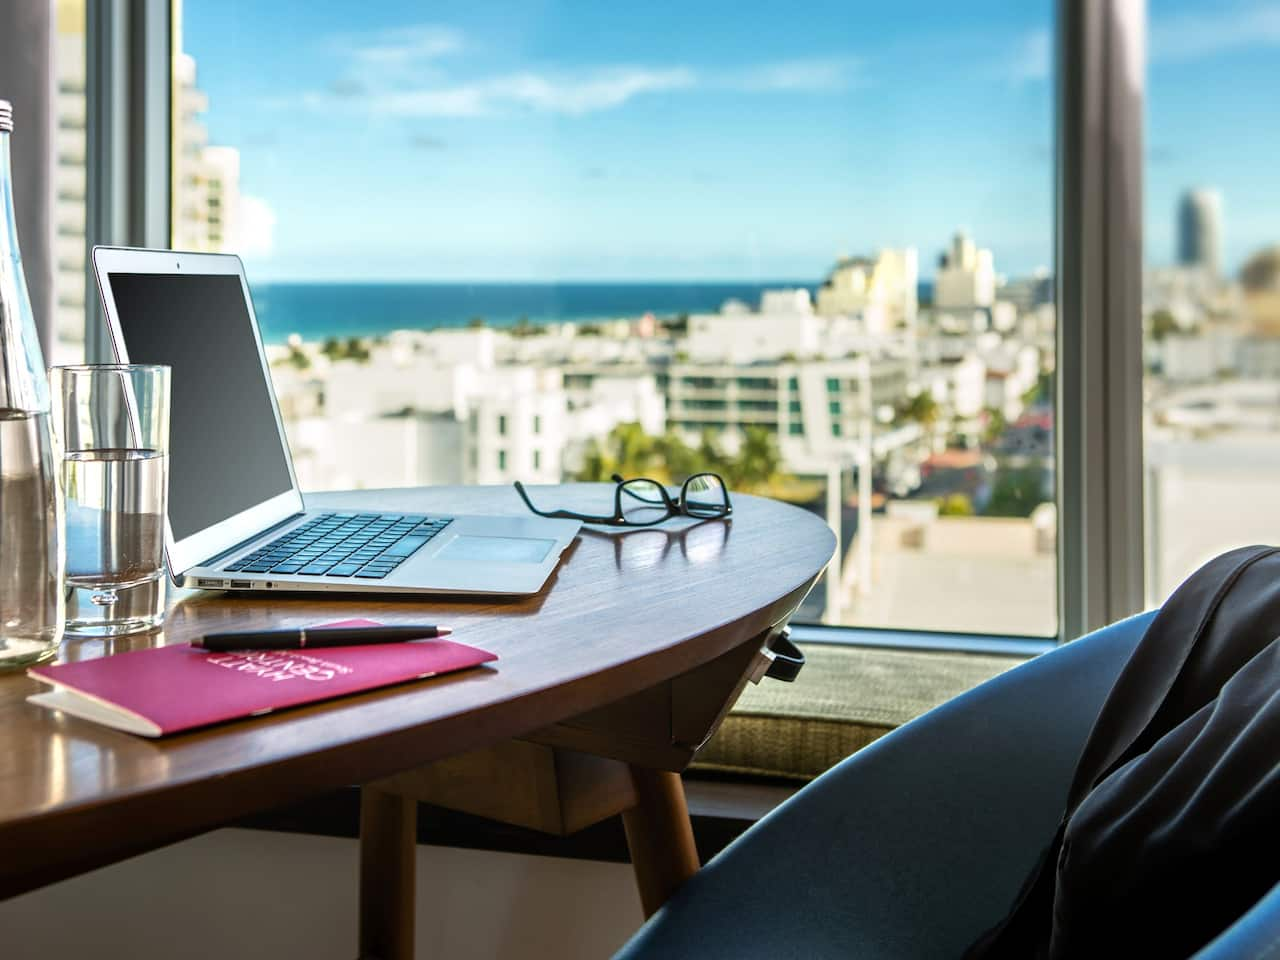 Hyatt Centric South Beach Miami Work Desk with View Image